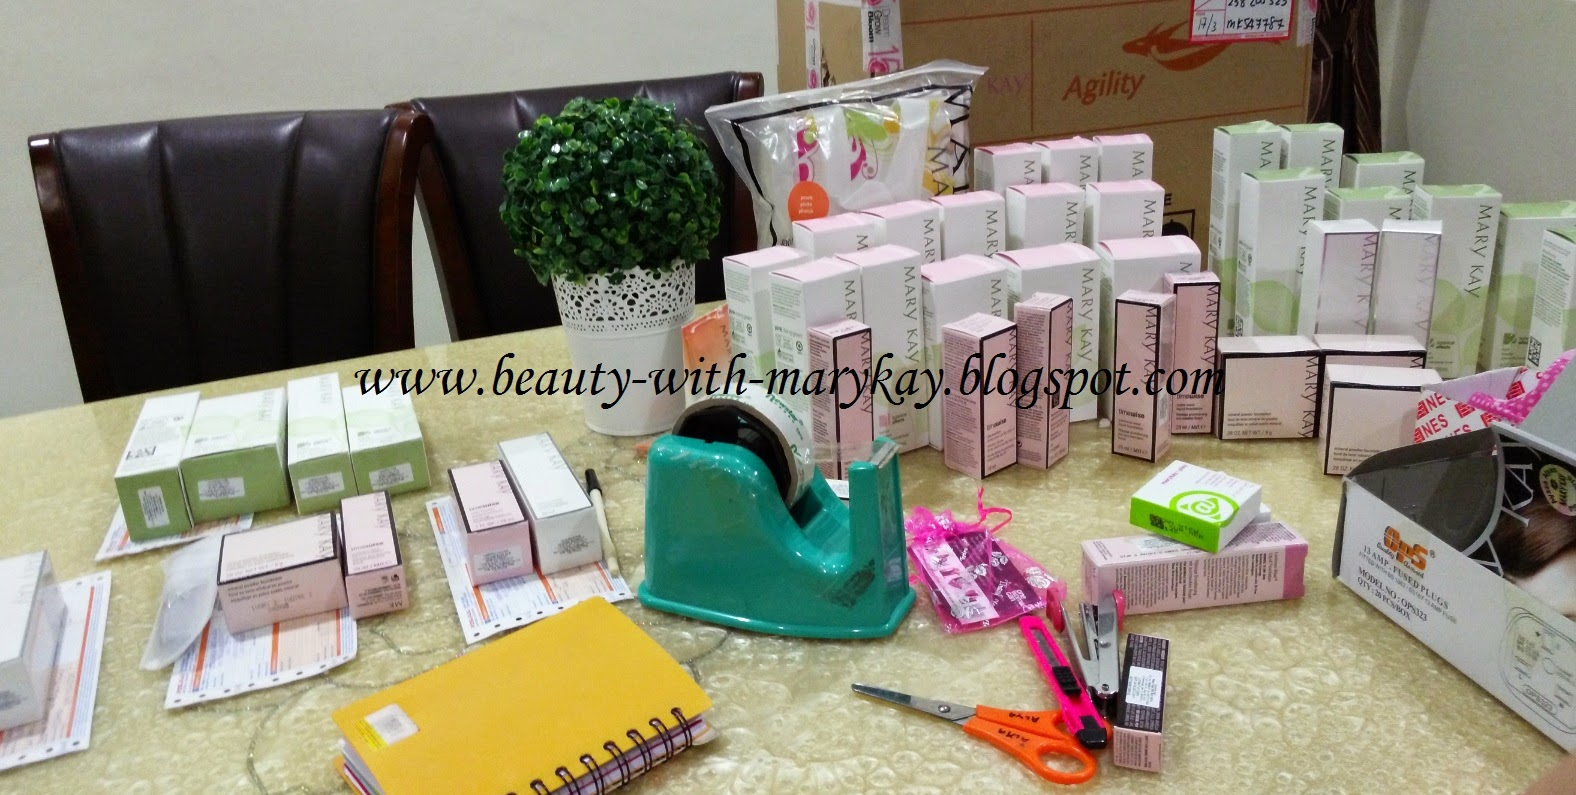 batonical skincare, makeup mary ka, liquid foundation , cc cream, eye color, mineral powder foundation, lip mask, lip balm